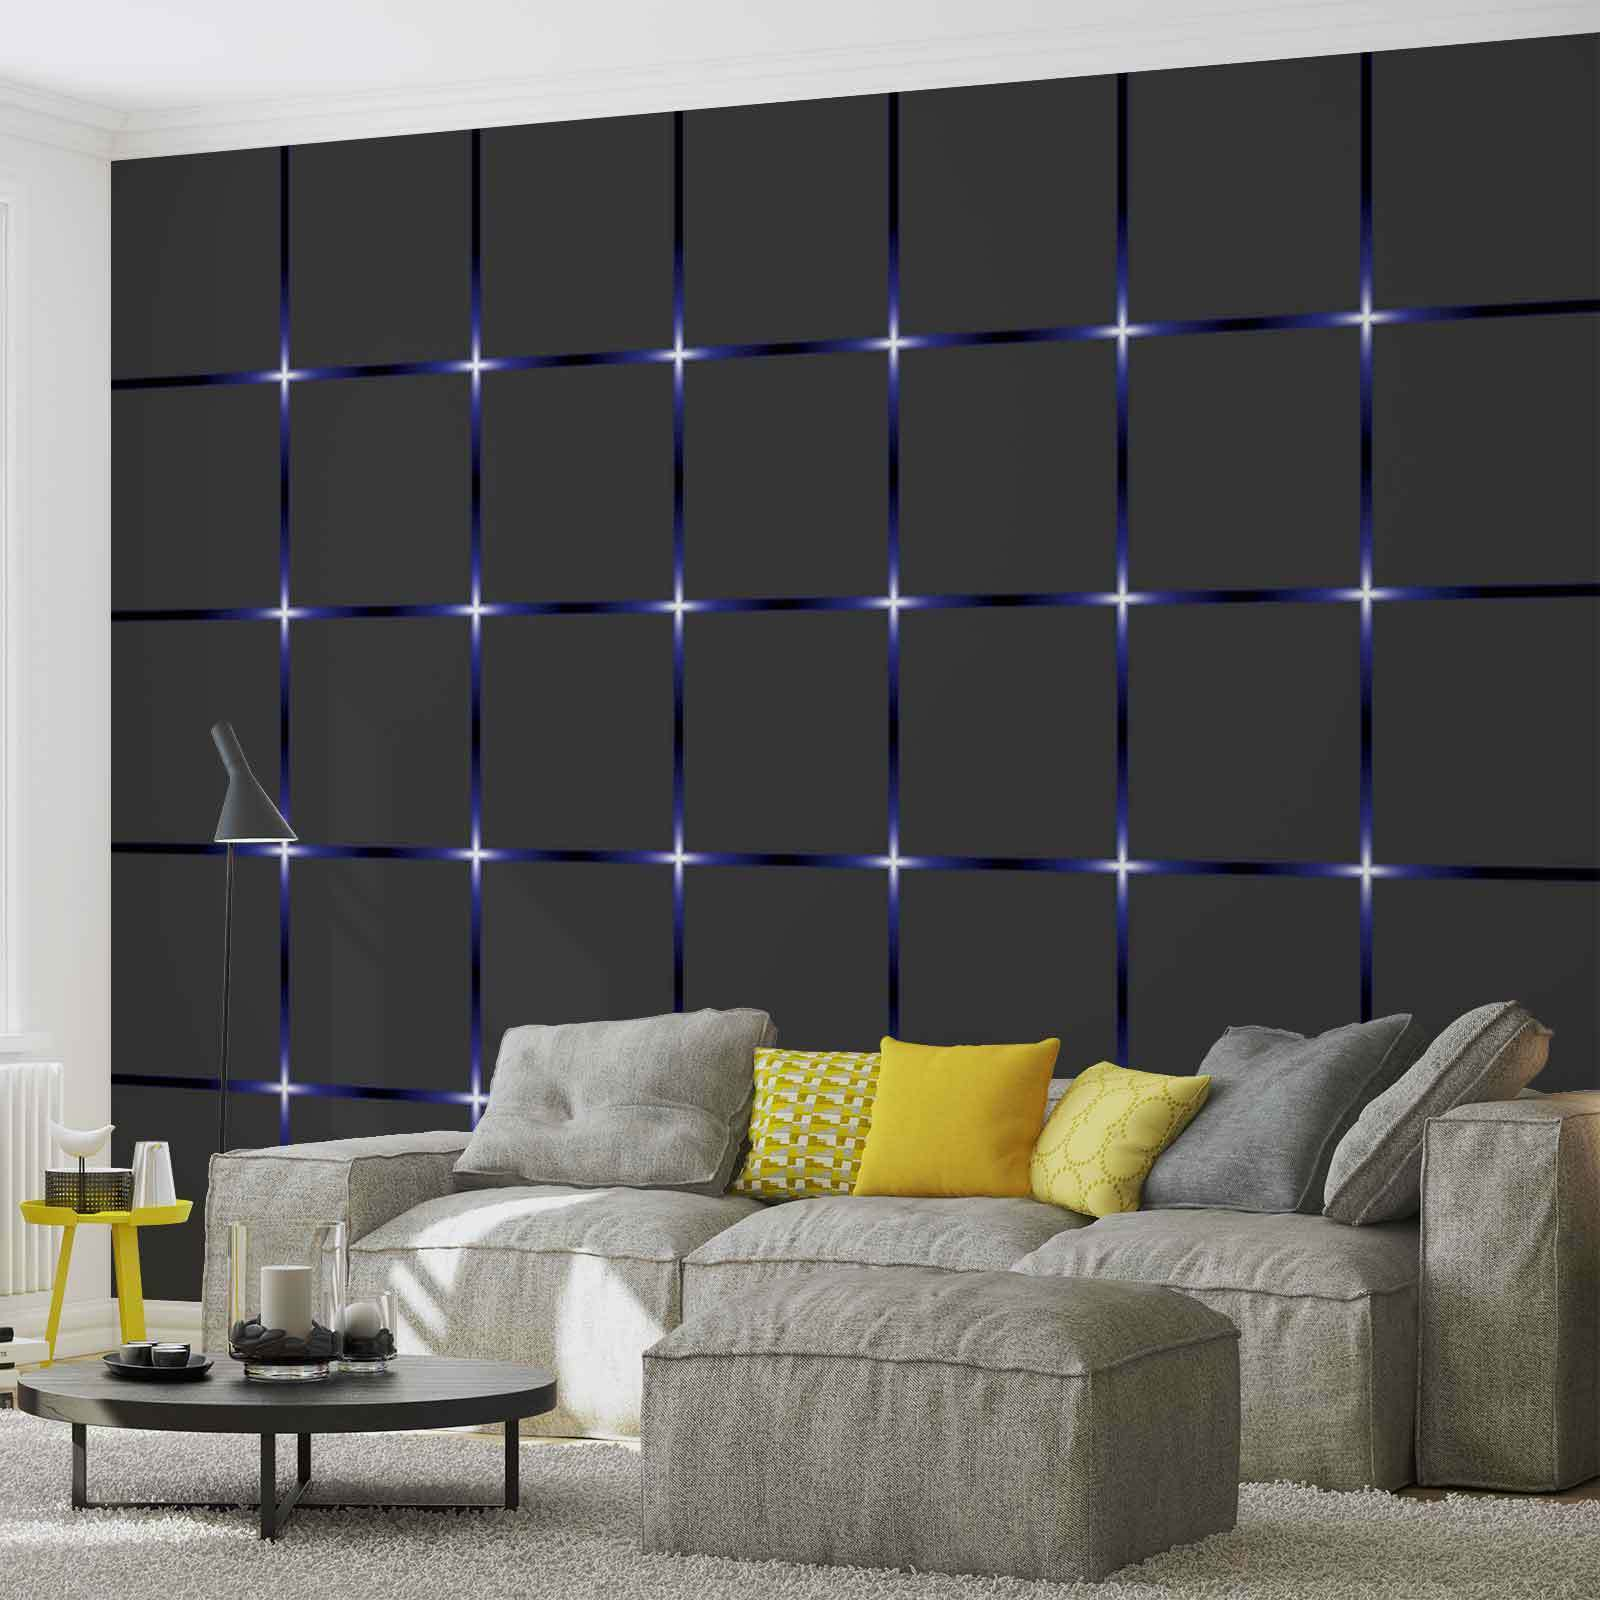 Wall mural square black blue xxl photo wallpaper 2155dc for Black wall mural